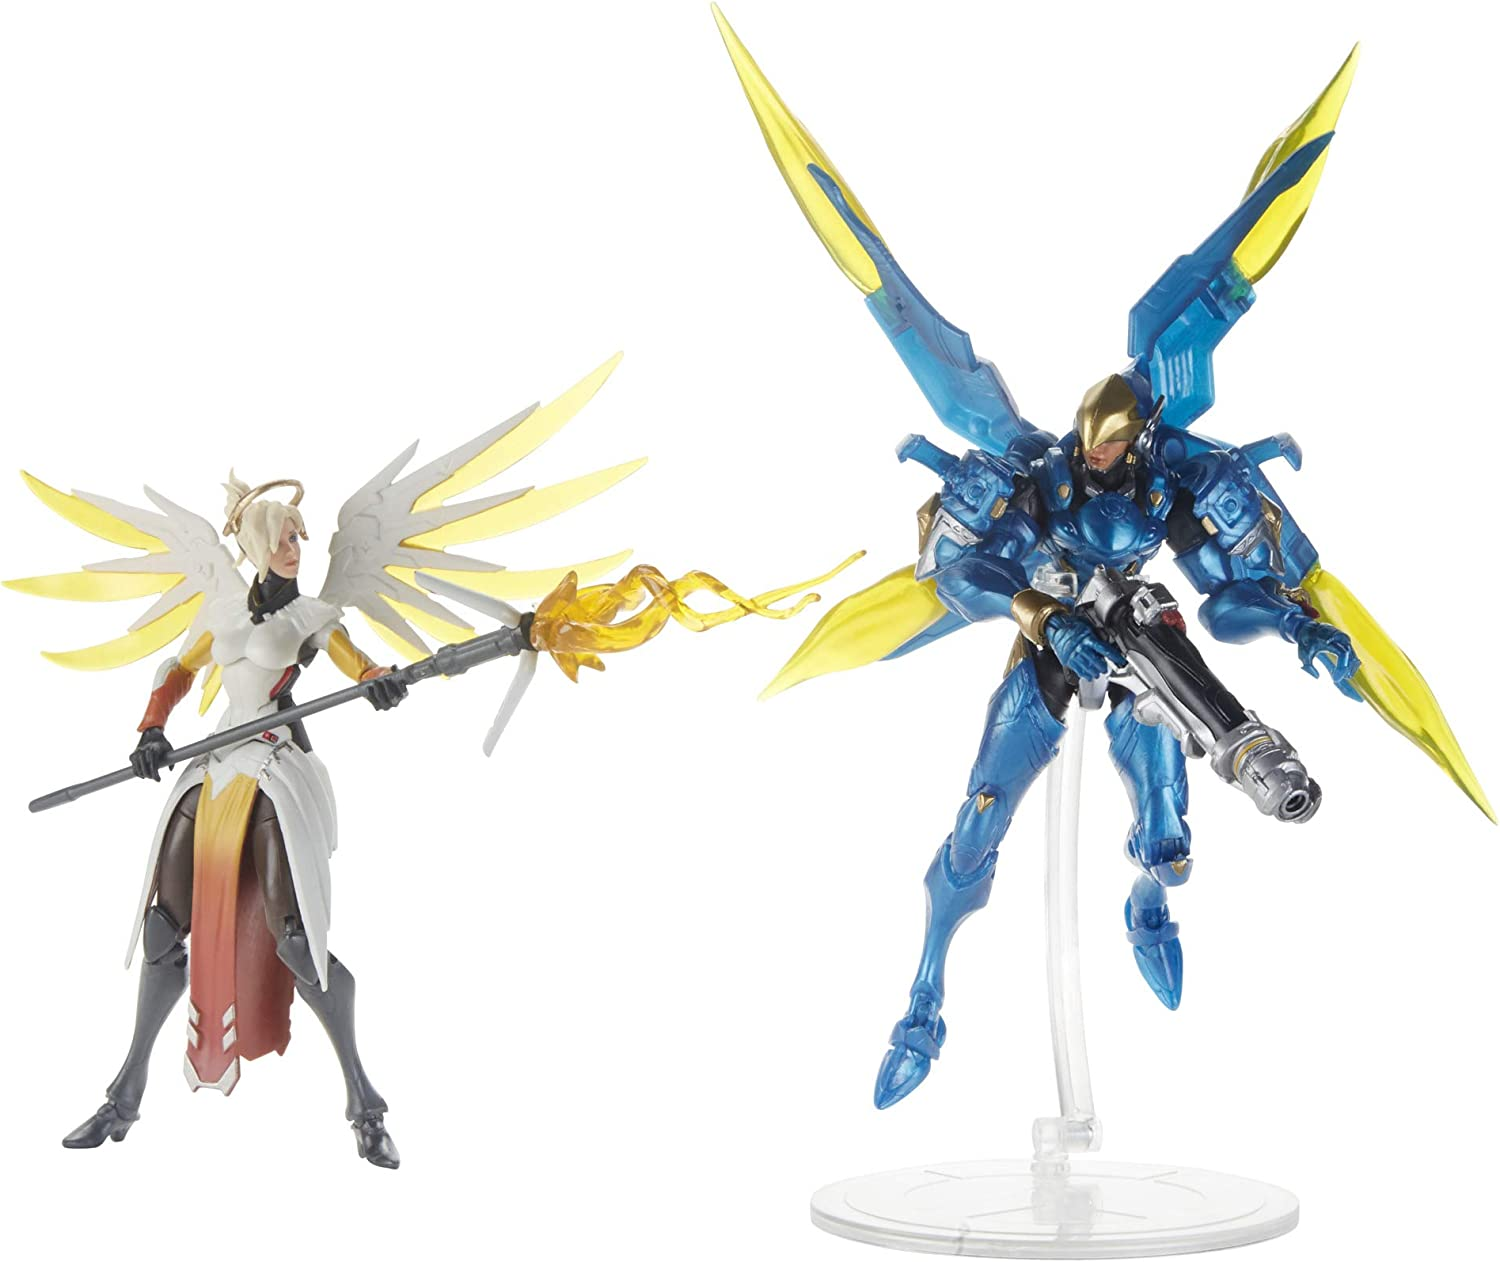 Overwatch Ultimates Series 6 inch Collectible Carbon Series Action Figure 4-Pack with Genji, Zarya, Pharah, and D. Va – Blizzard Video Game